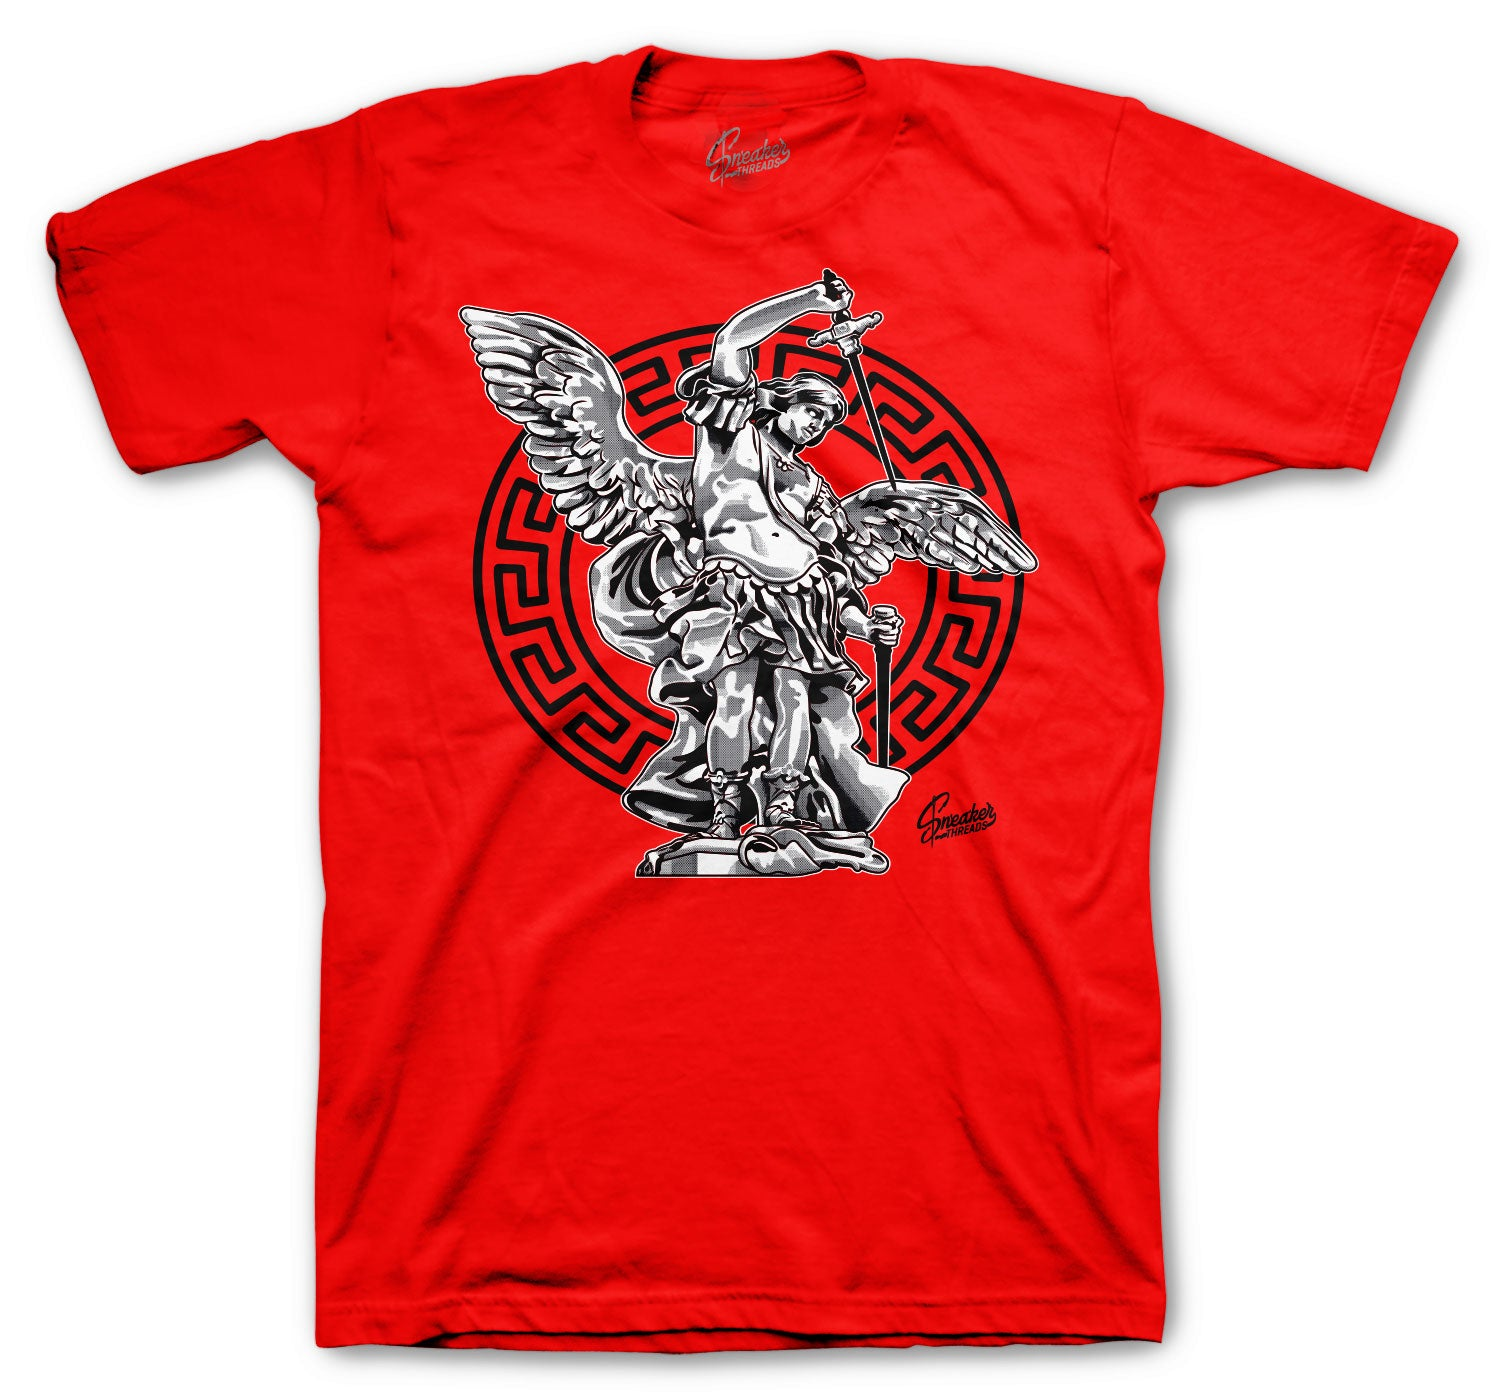 Yeezy Bred 350 Shirt - St. Michael - Red